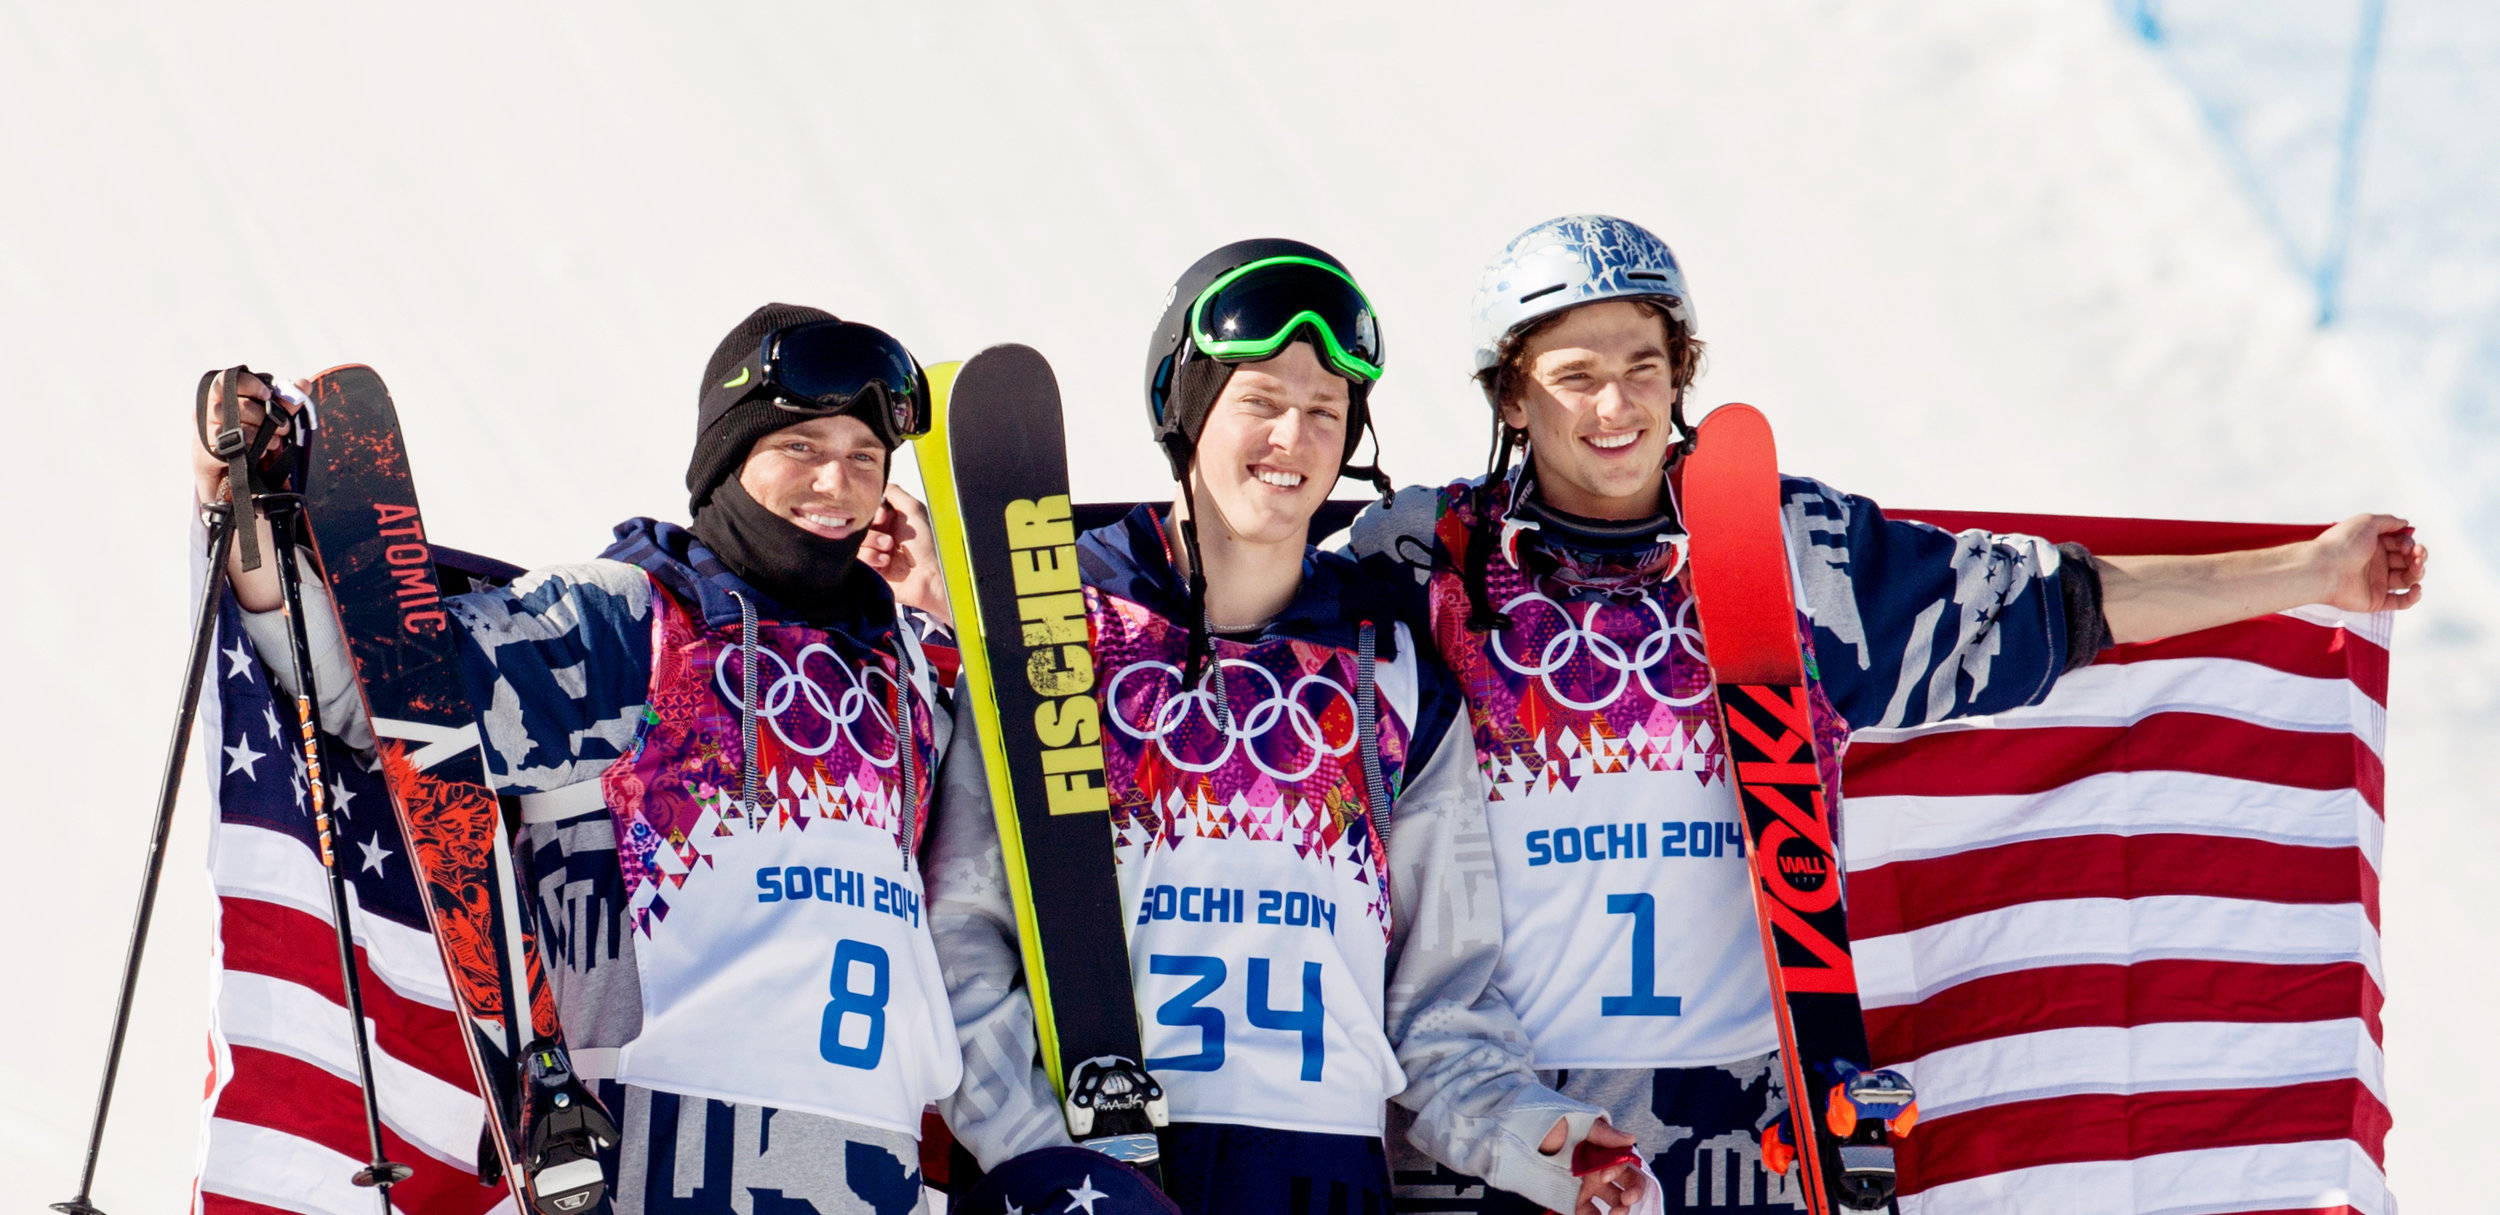 U.S. podium sweep at the historic debut of men's slopestyle skiing in the 2014 Sochi Olympic Winter Games, when Joss Christensen took the sport's first-ever gold medal with teammates Gus Kenworthy and Nick Goepper earning silver and bronze. (U.S. Ski & Snowboard)